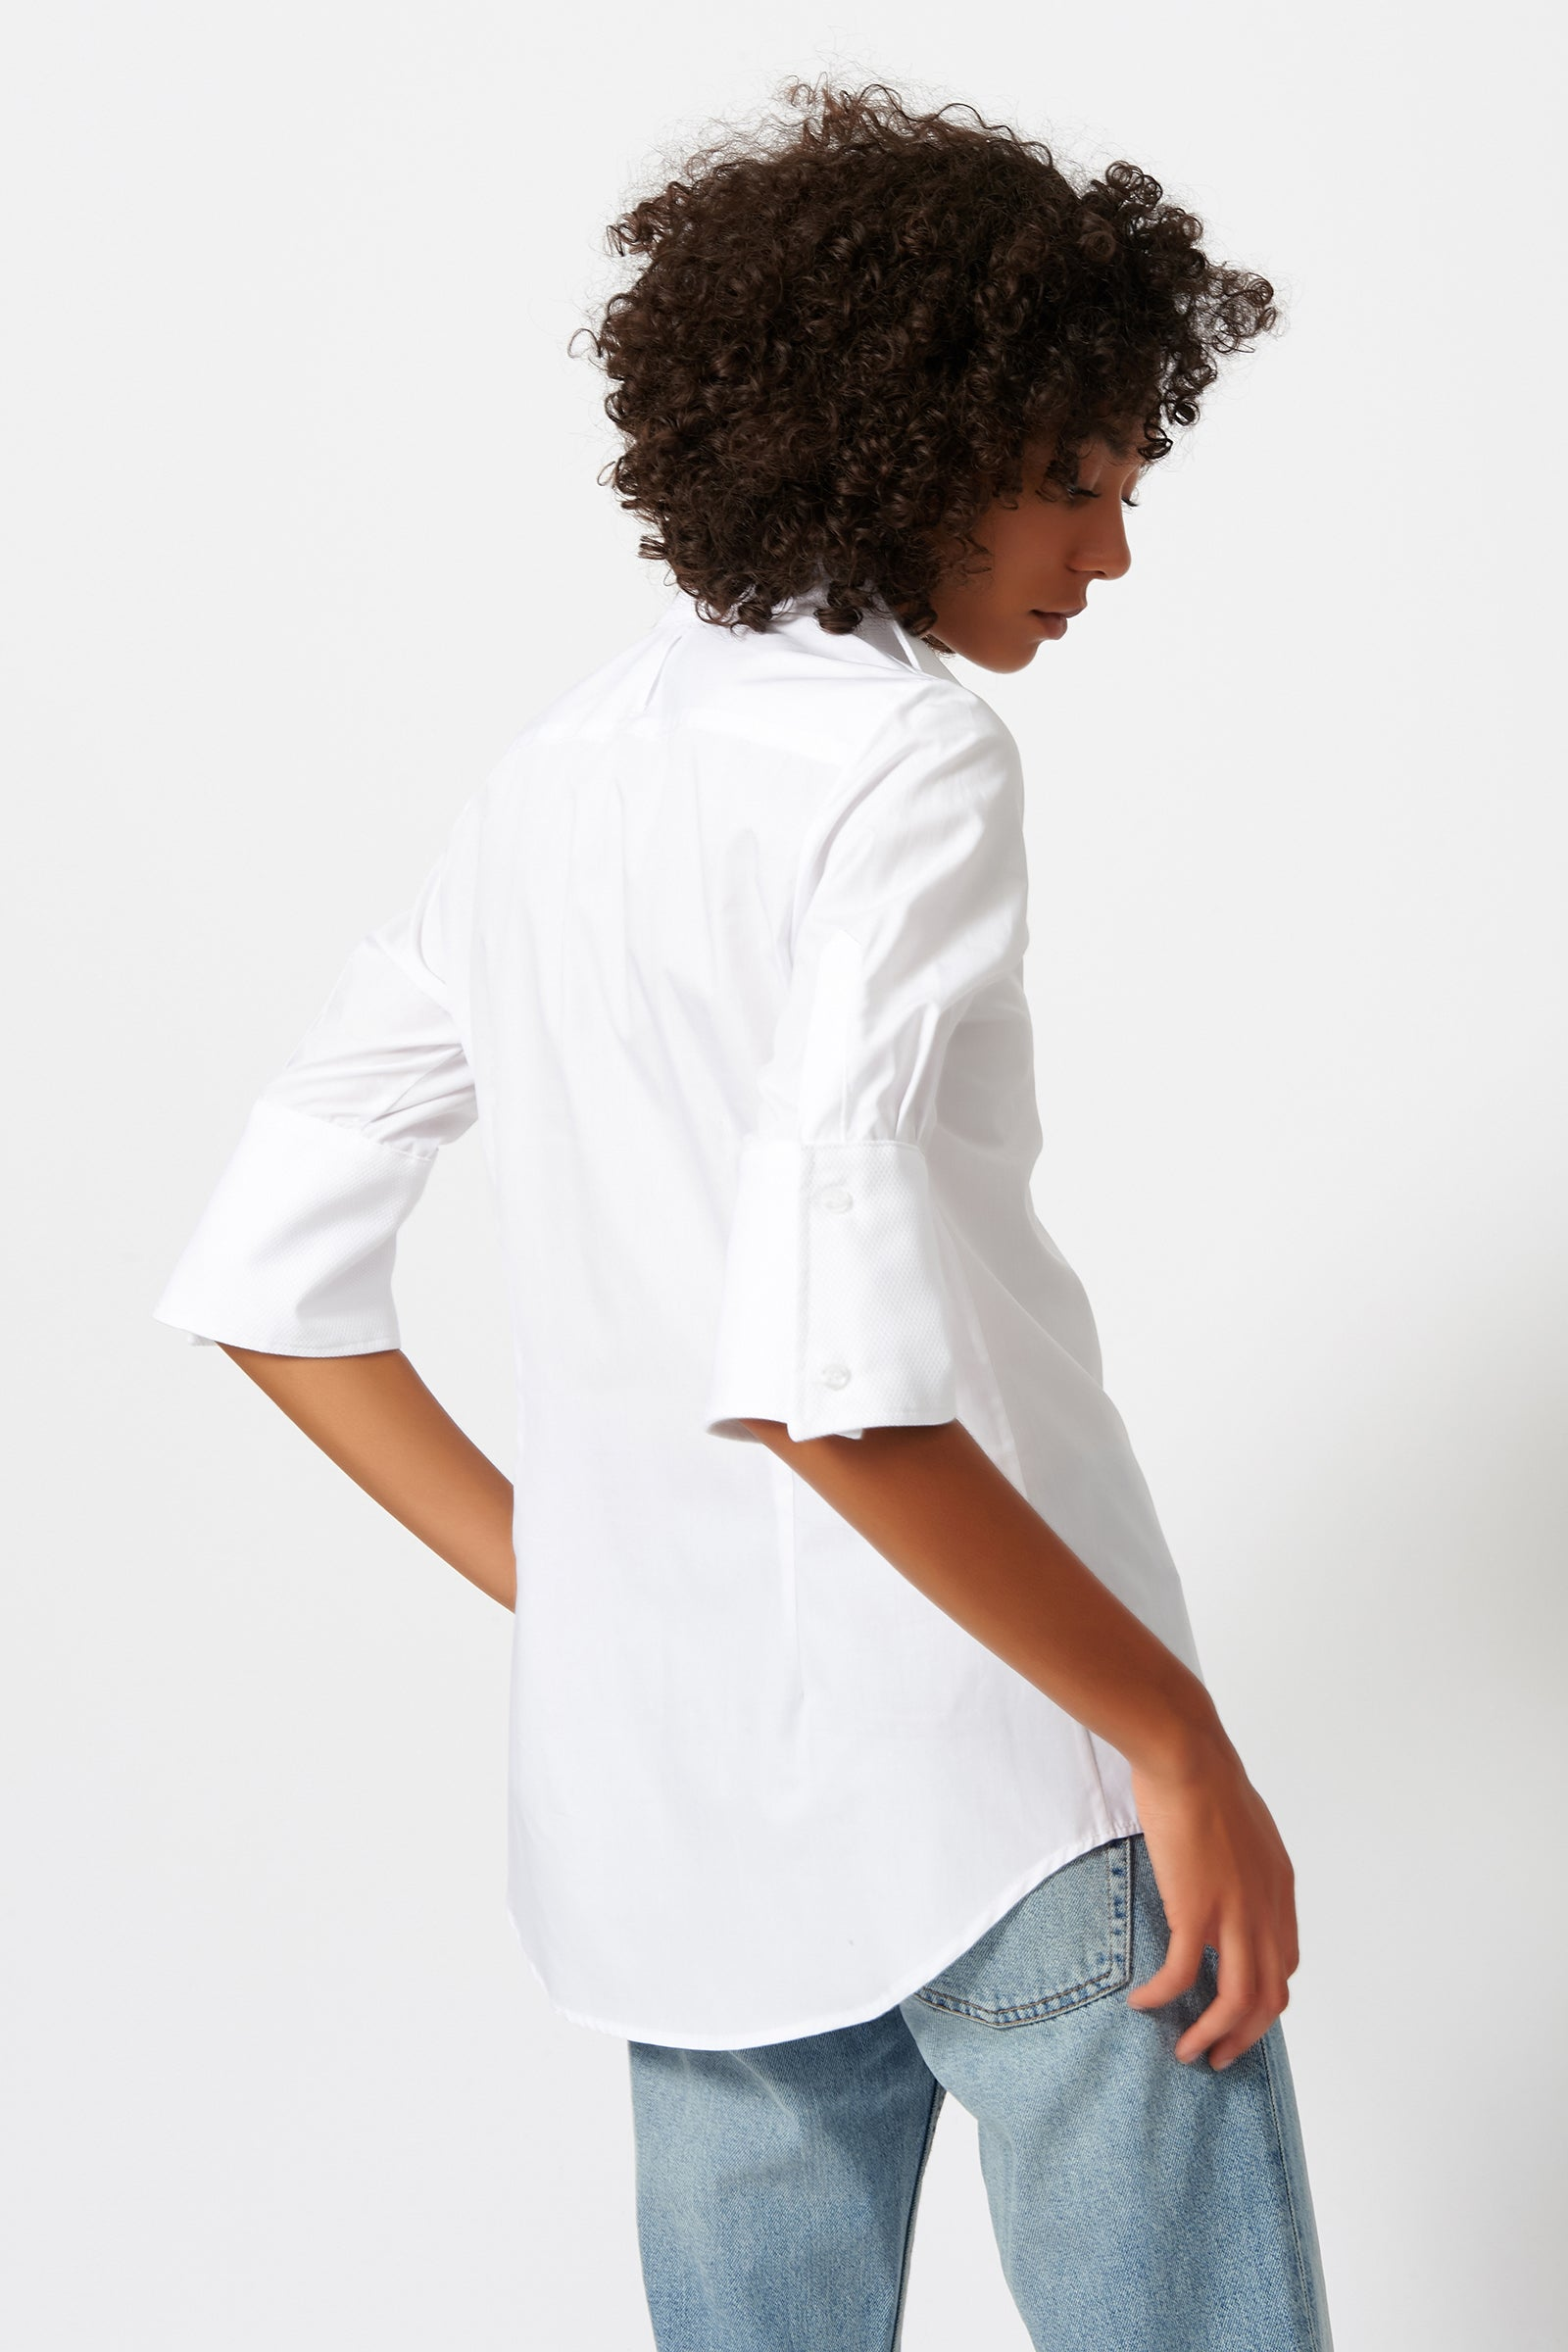 Kal Rieman Double Collar Shirt in White Poplin with Pique on Model Back View